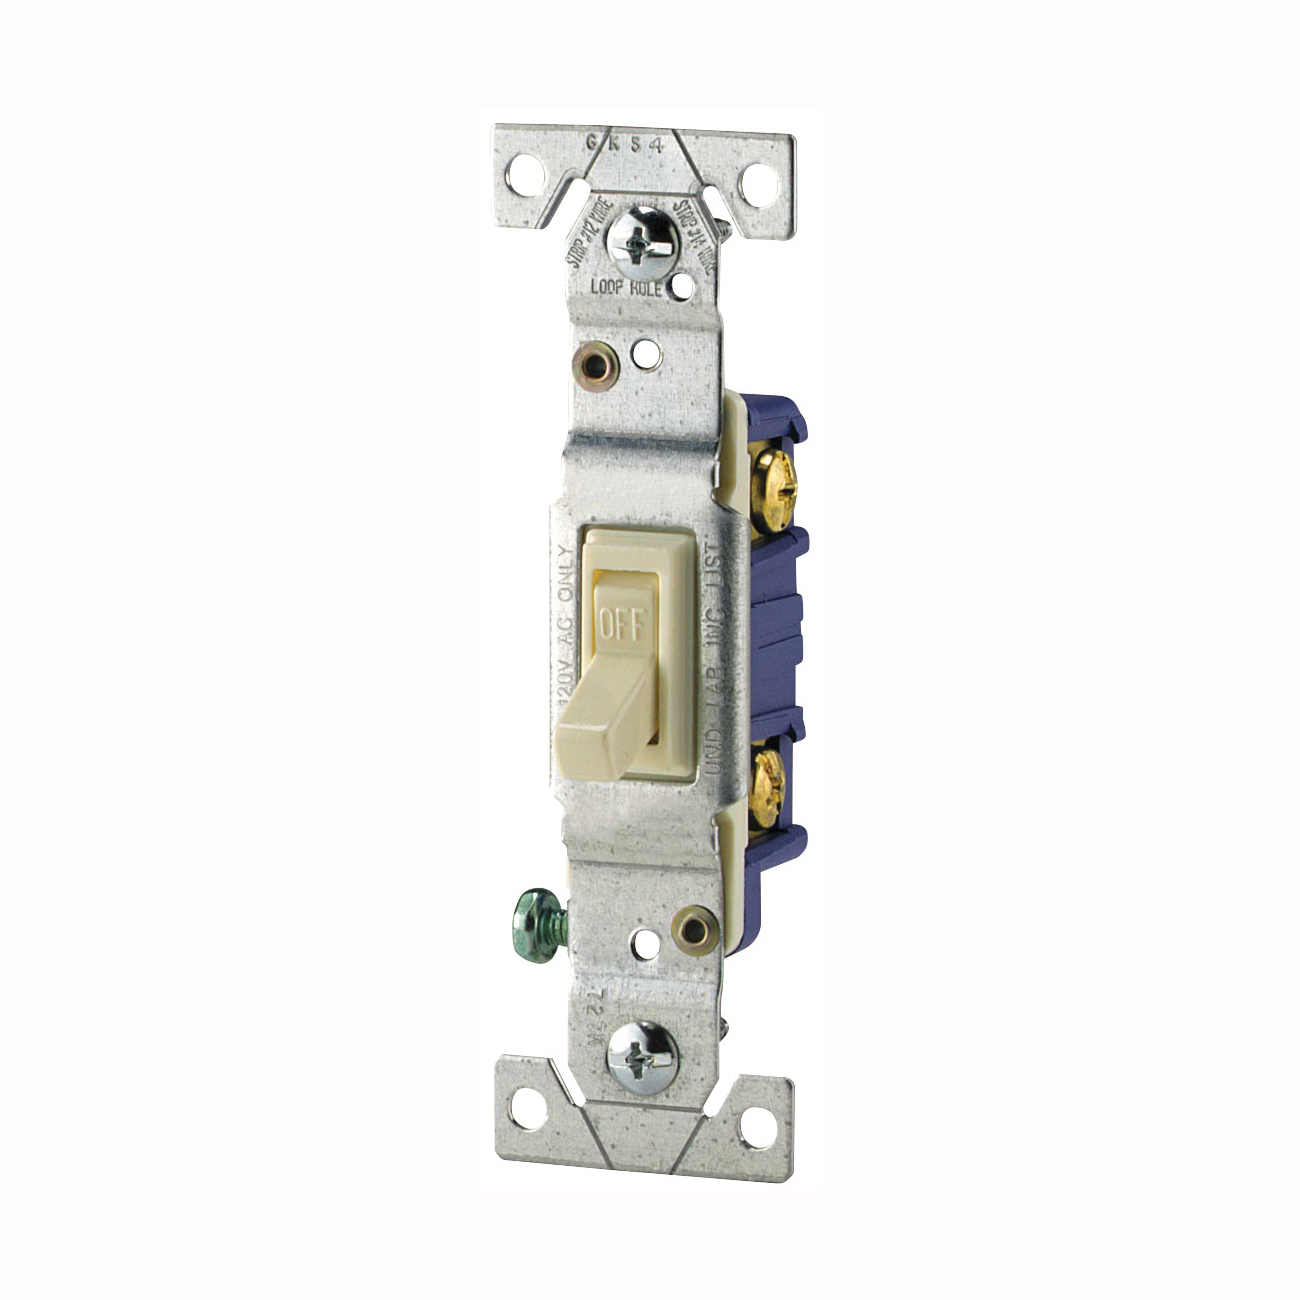 Picture of Eaton Wiring Devices 1301-7V Toggle Switch, 15 A, 120 V, Polycarbonate Housing Material, Ivory